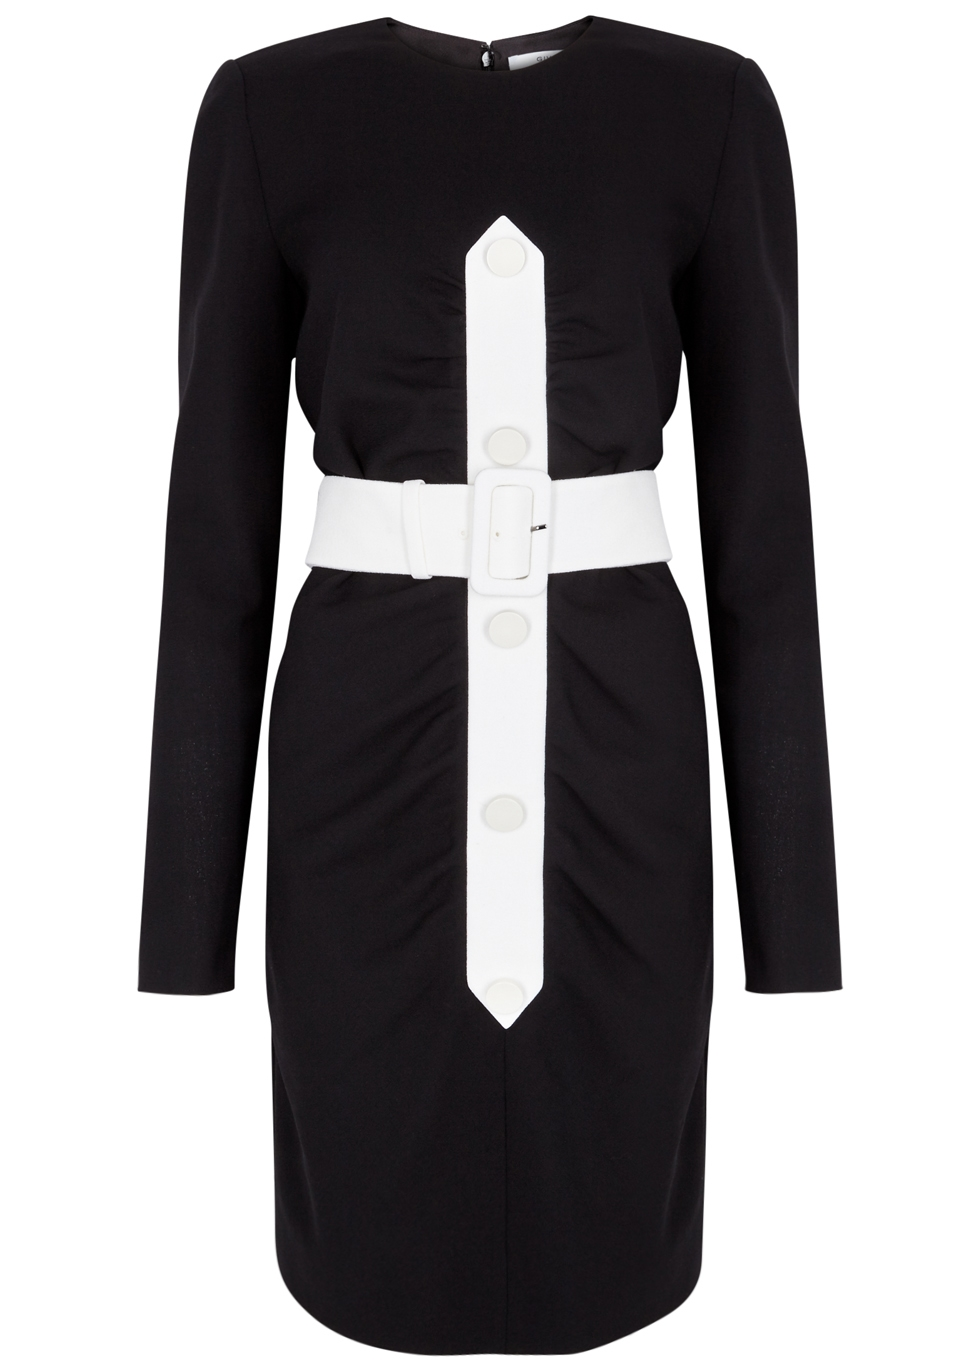 GIVENCHY BLACK BELTED WOOL DRESS